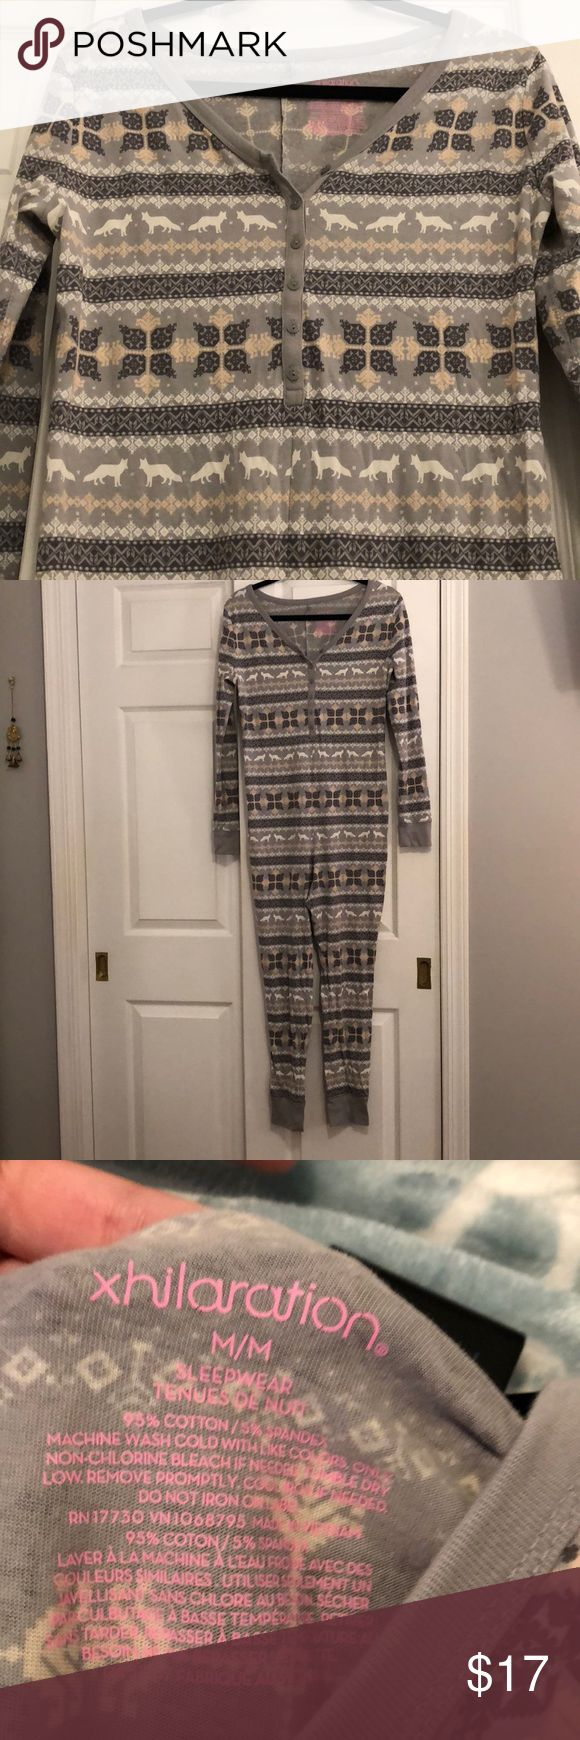 NWOT WOMANS ONESIE NWOT. Woman's onesie! Perfect for winter! Comes from a smoke free home. Size: M Xhilaration Intimates & Sleepwear Pajamas